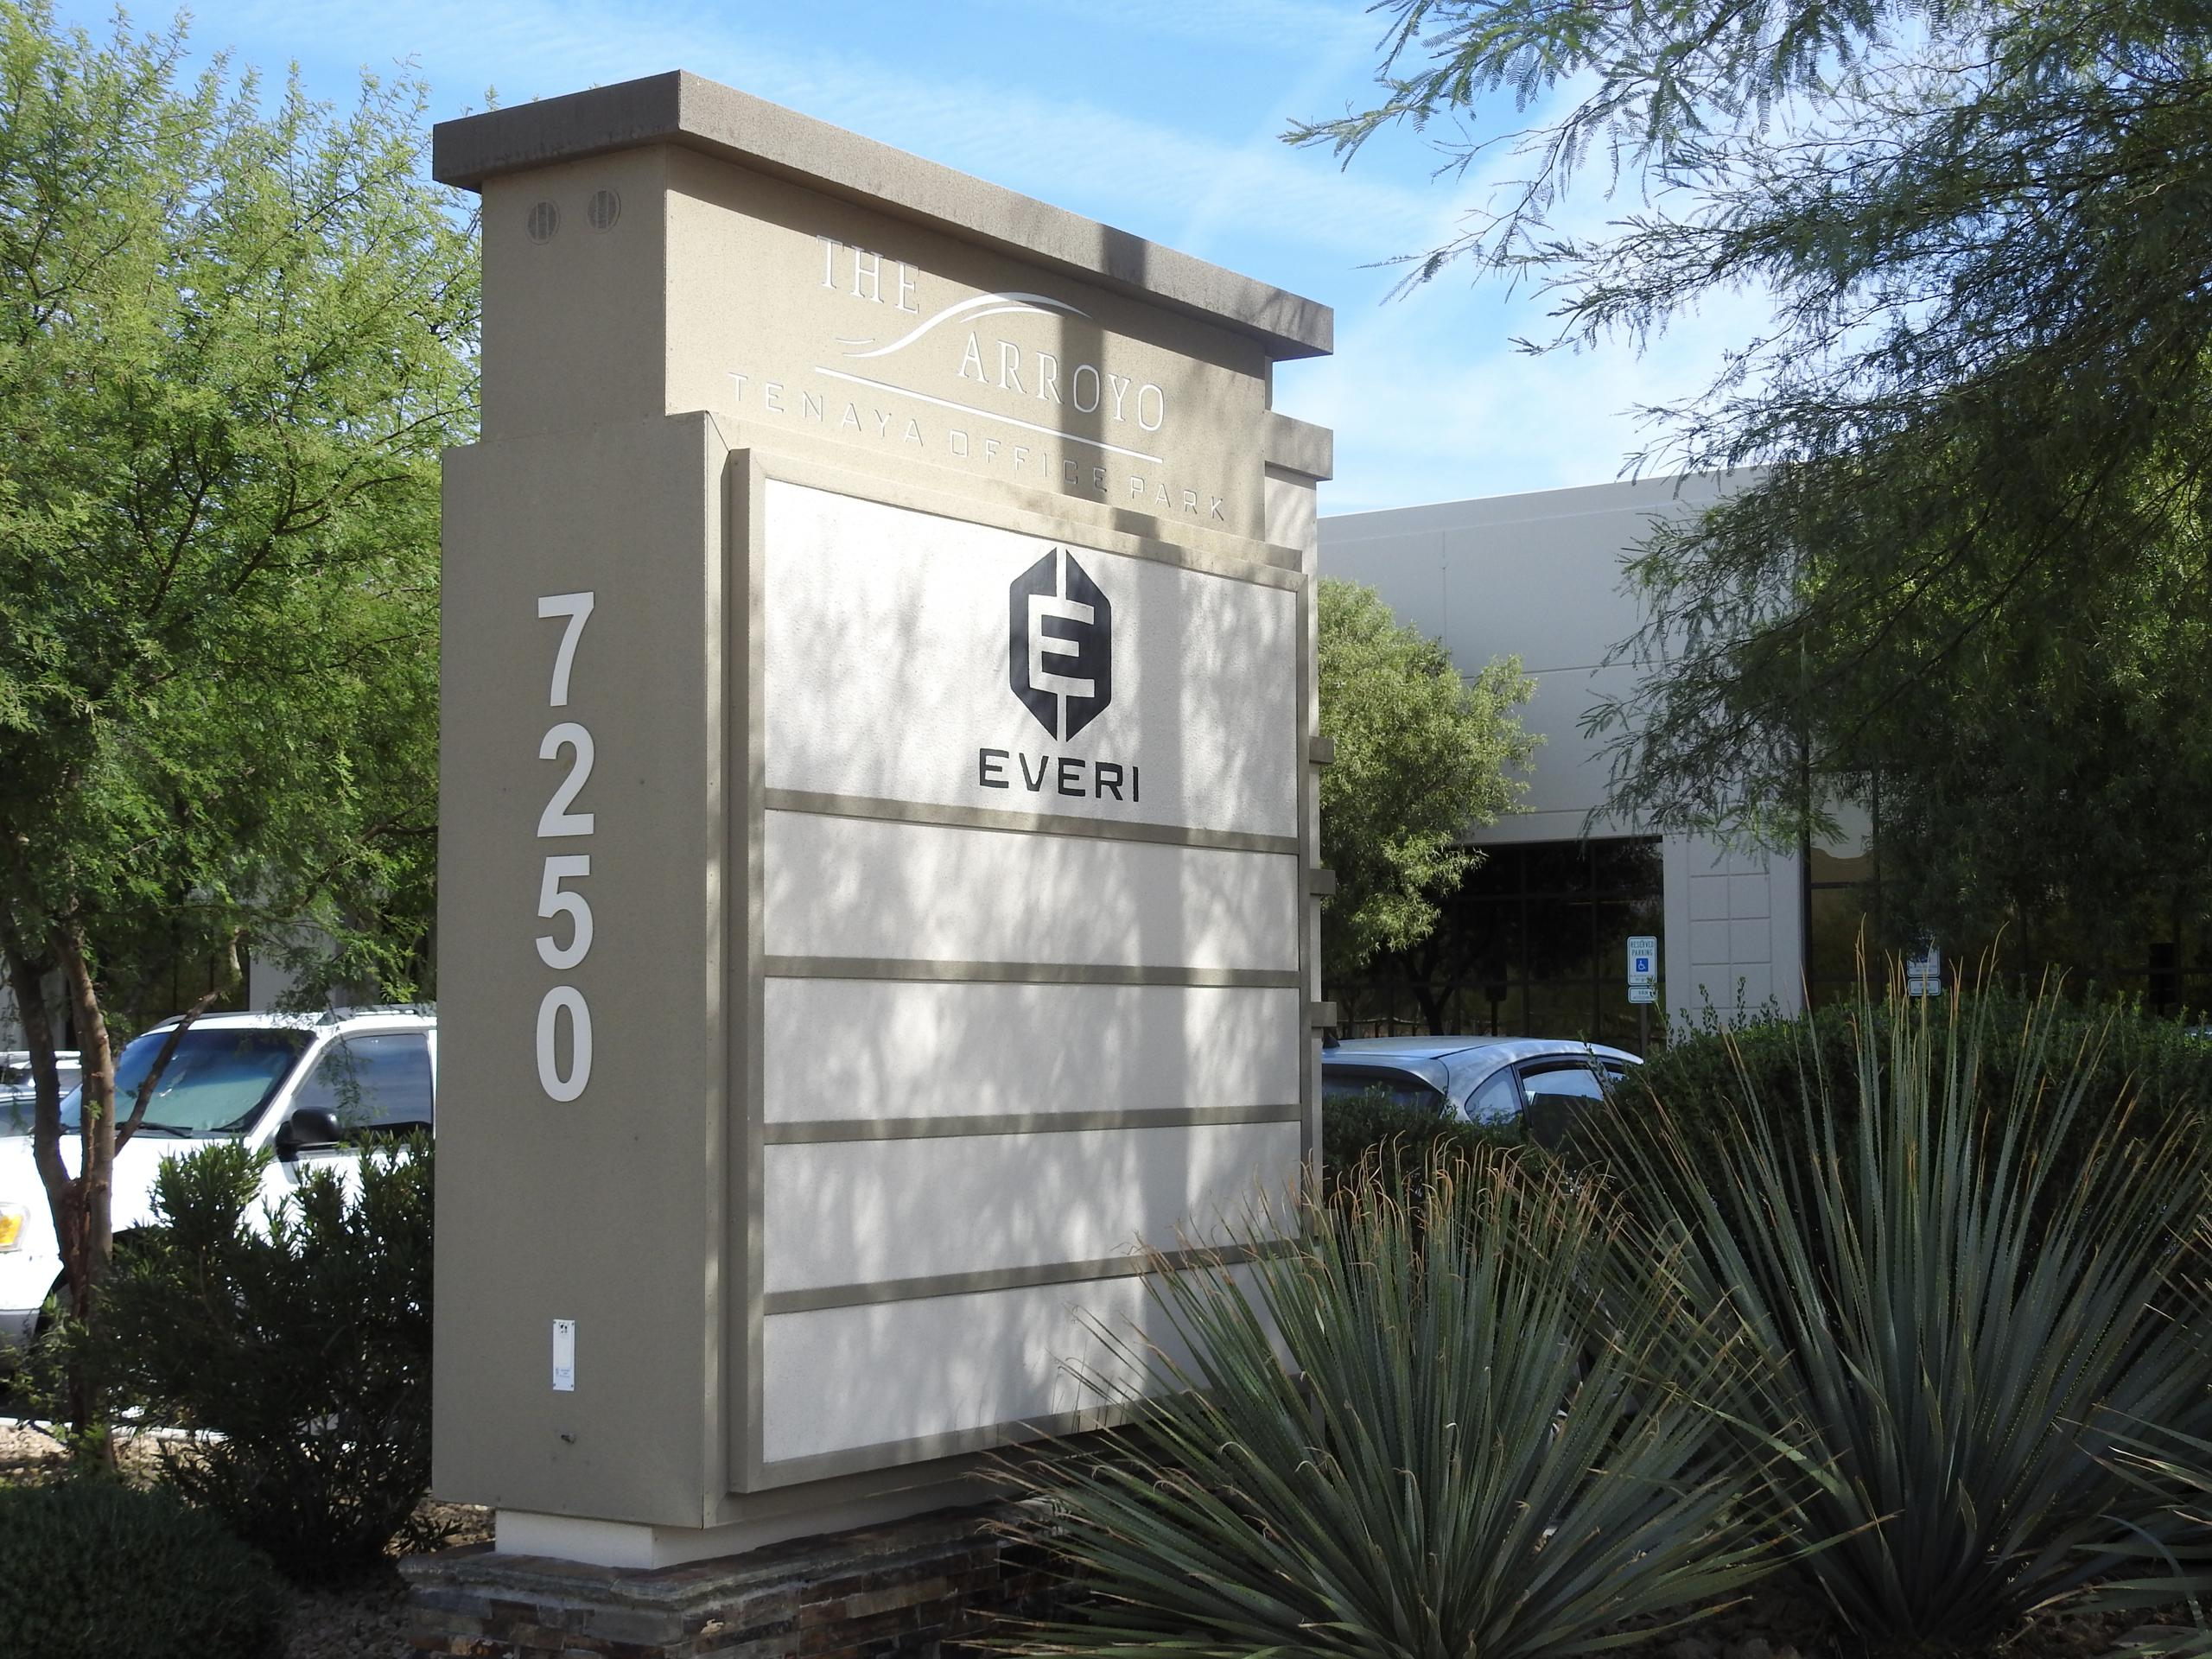 Entrance to Everi Holdings' headquarters in Las Vegas, Nevada.